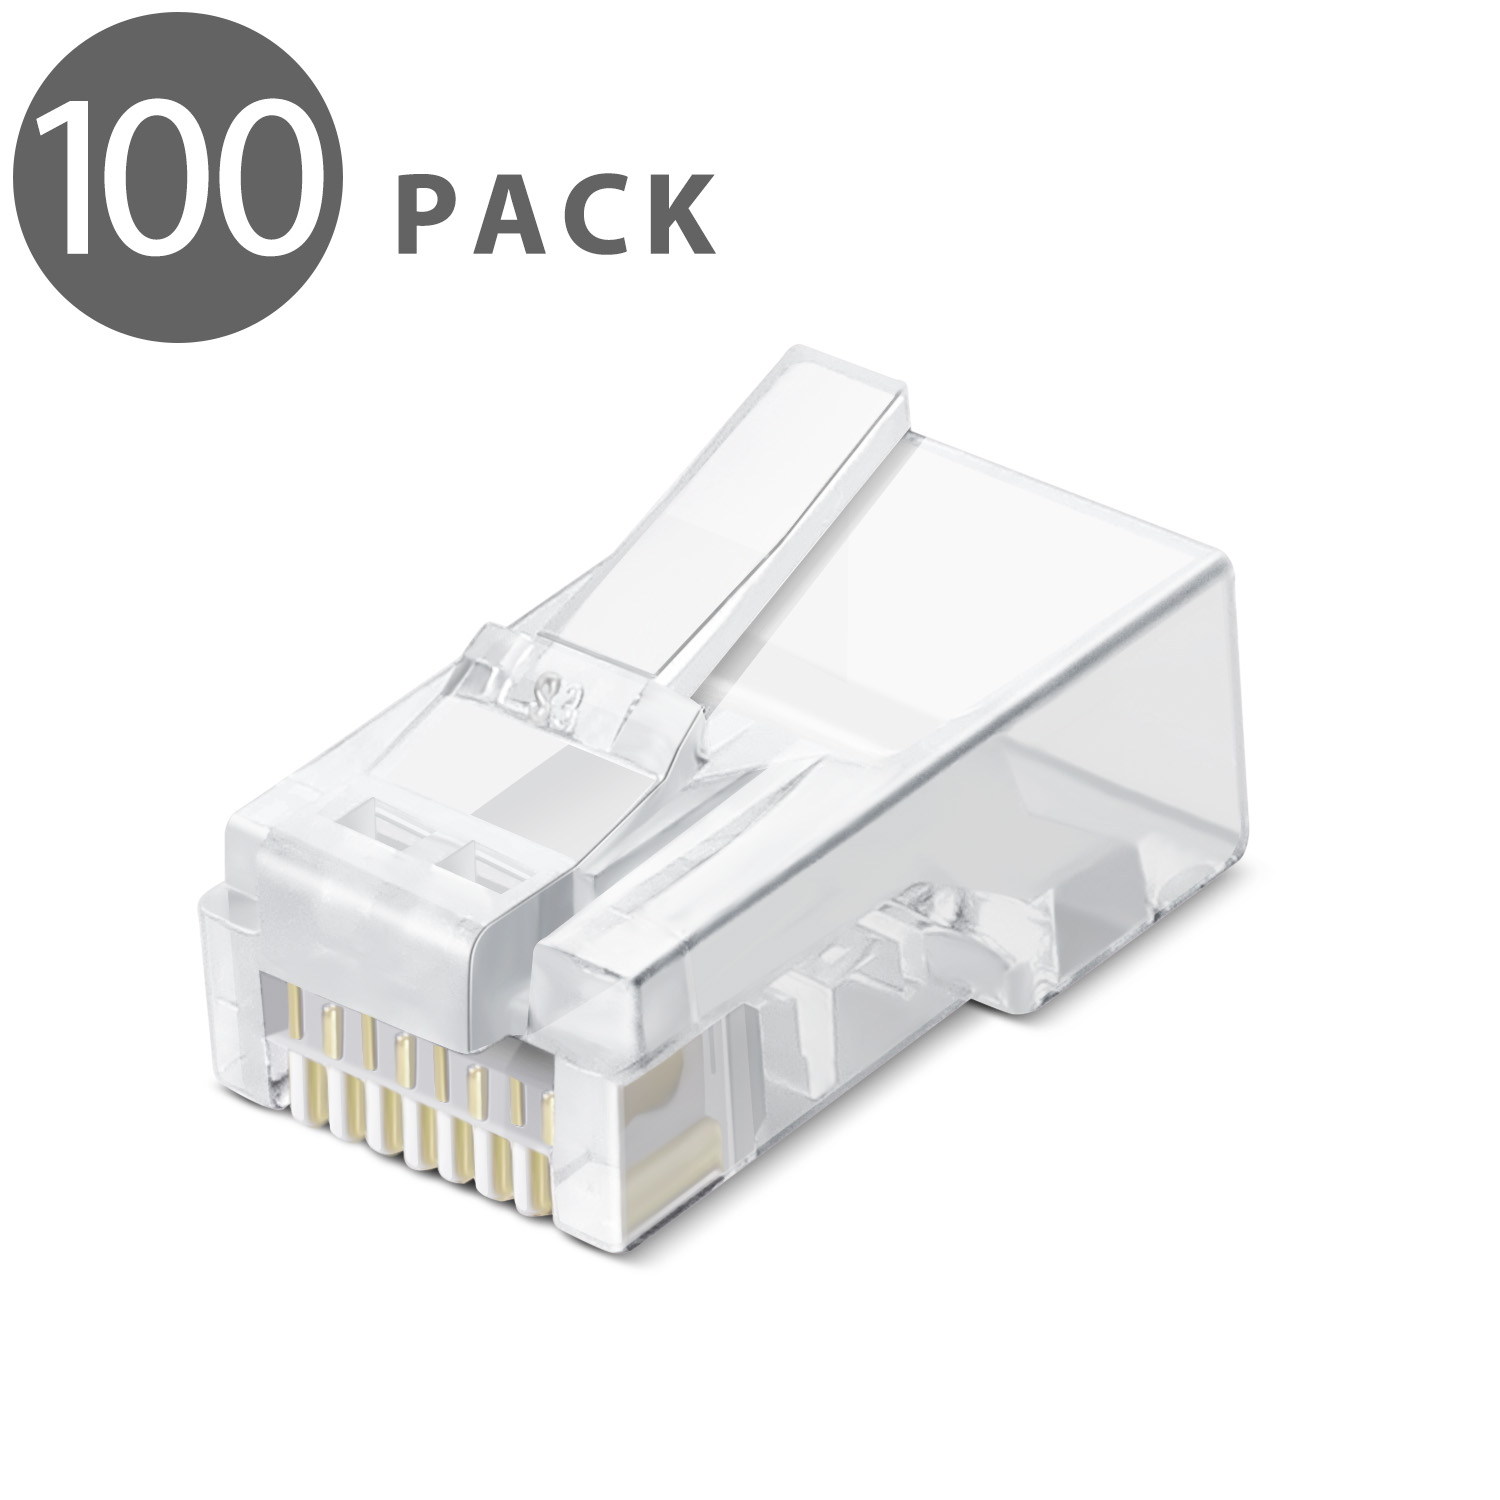 Cenos rj45 connector ethernet cable plug shielded cat6 gold plated network stp 8p8c modular terminals 50pcs 8pin XTL-B019